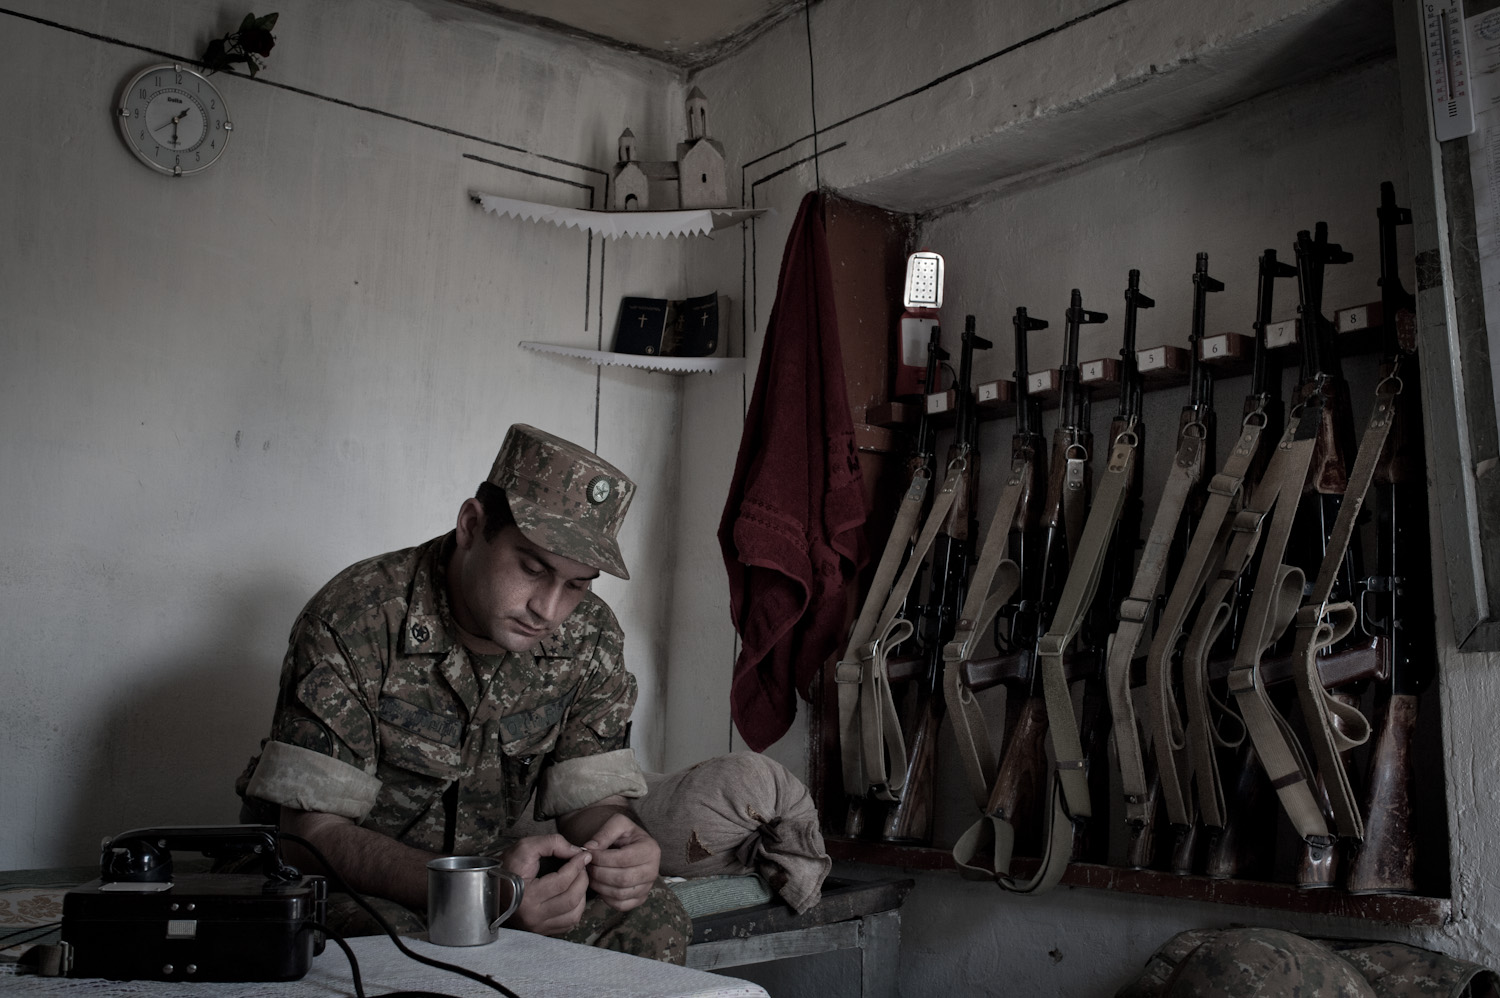 Commander Artur Mgrchyan rests in his dugout. He has been serving at the Mataghis frontline in Nagorno-Karabakh for the last 5 years.